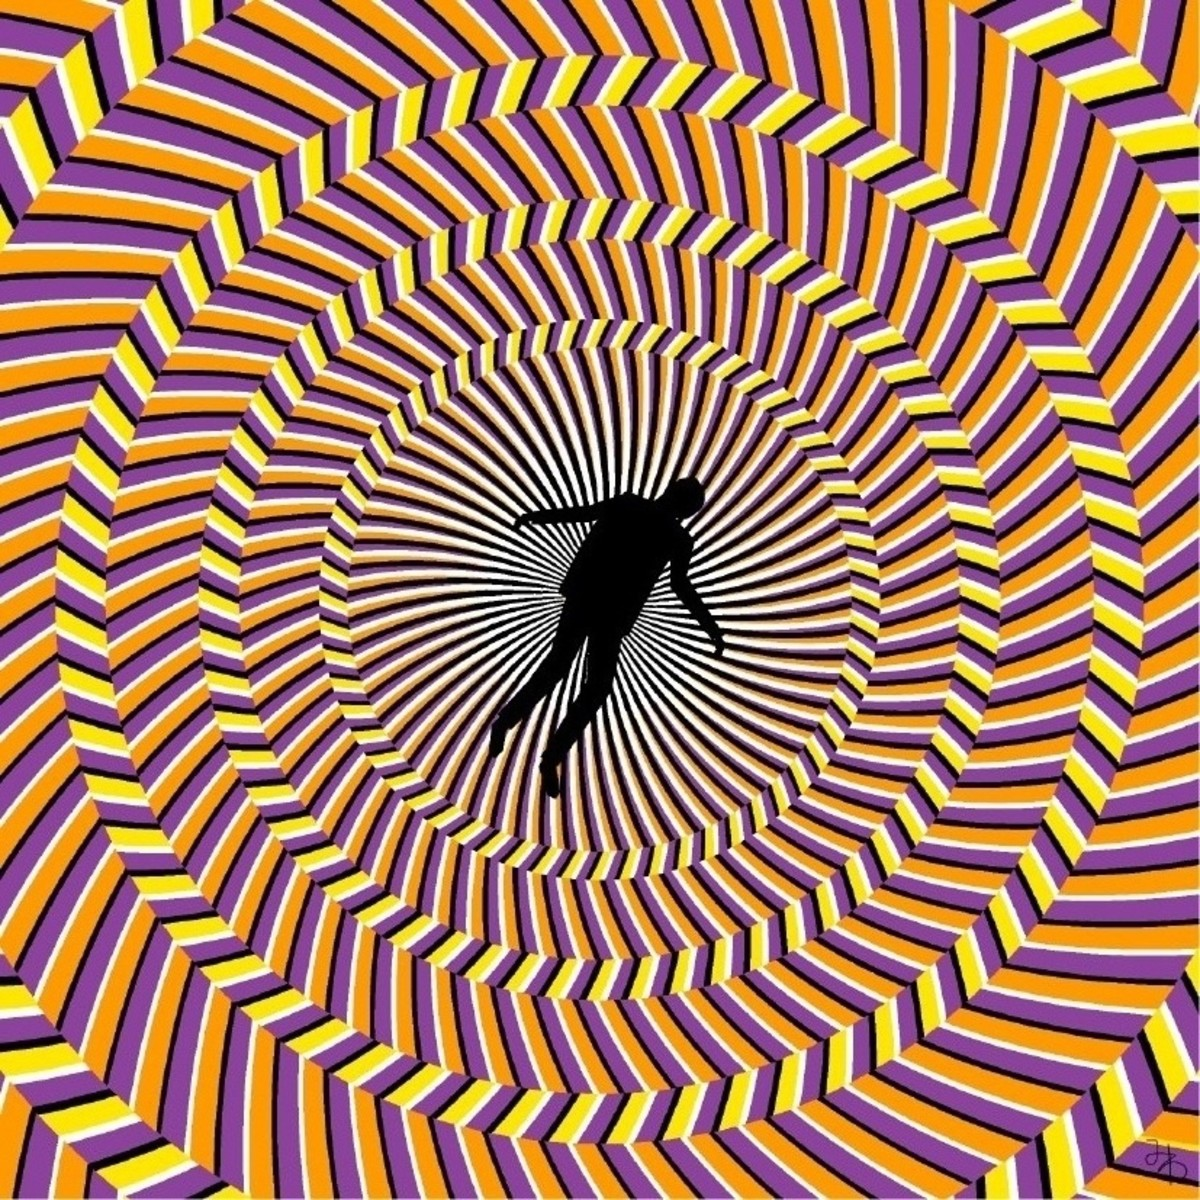 Vertigo is a scary and unsettling experience.